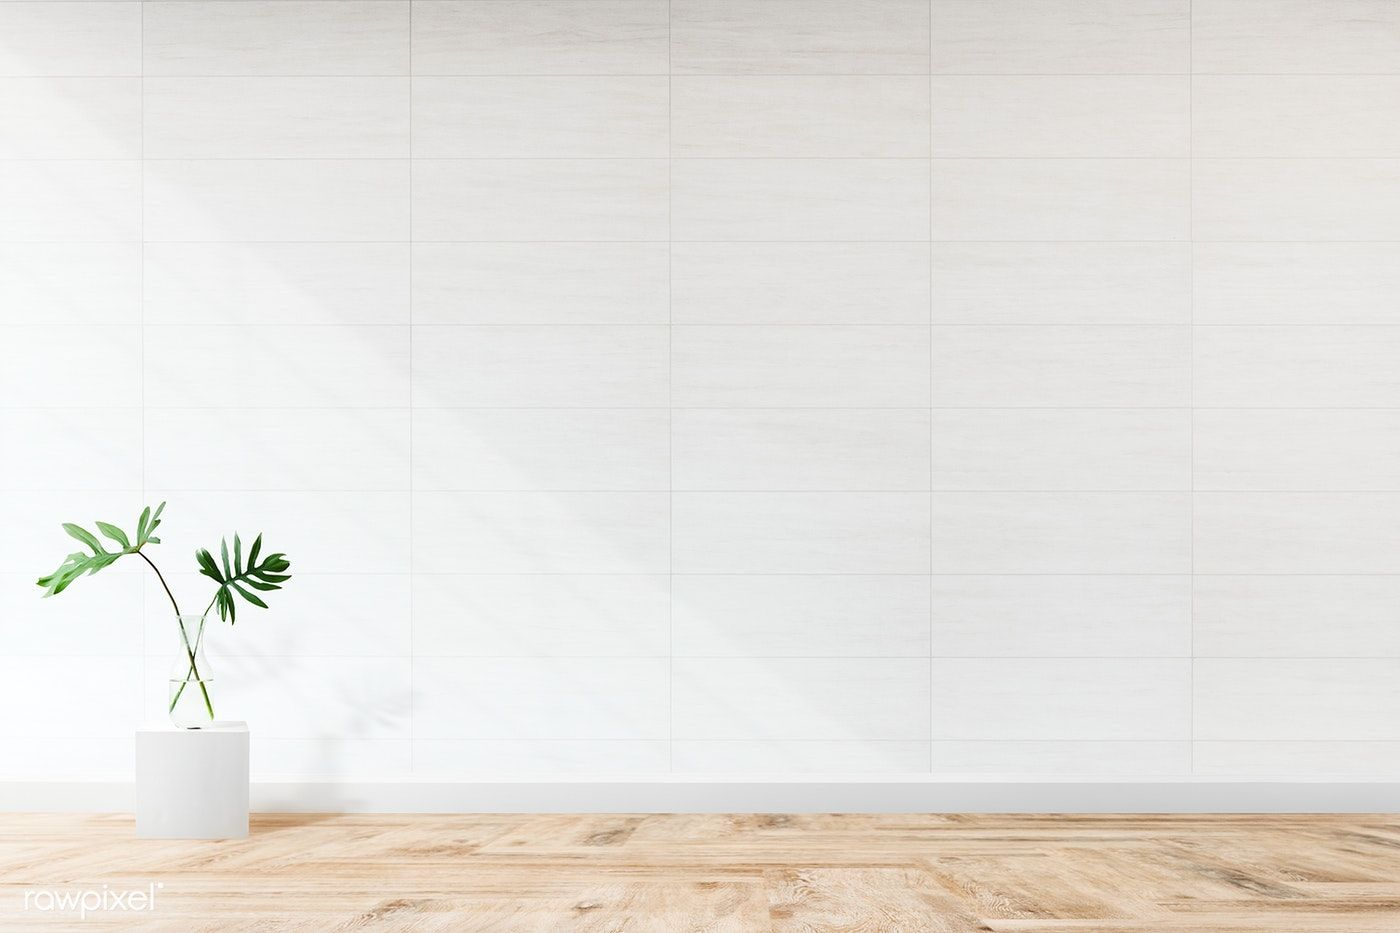 Plant Against A White Wall Mockup Free Image By Rawpixel Com In 2020 Frames On Wall Monstera Dark Grey Walls